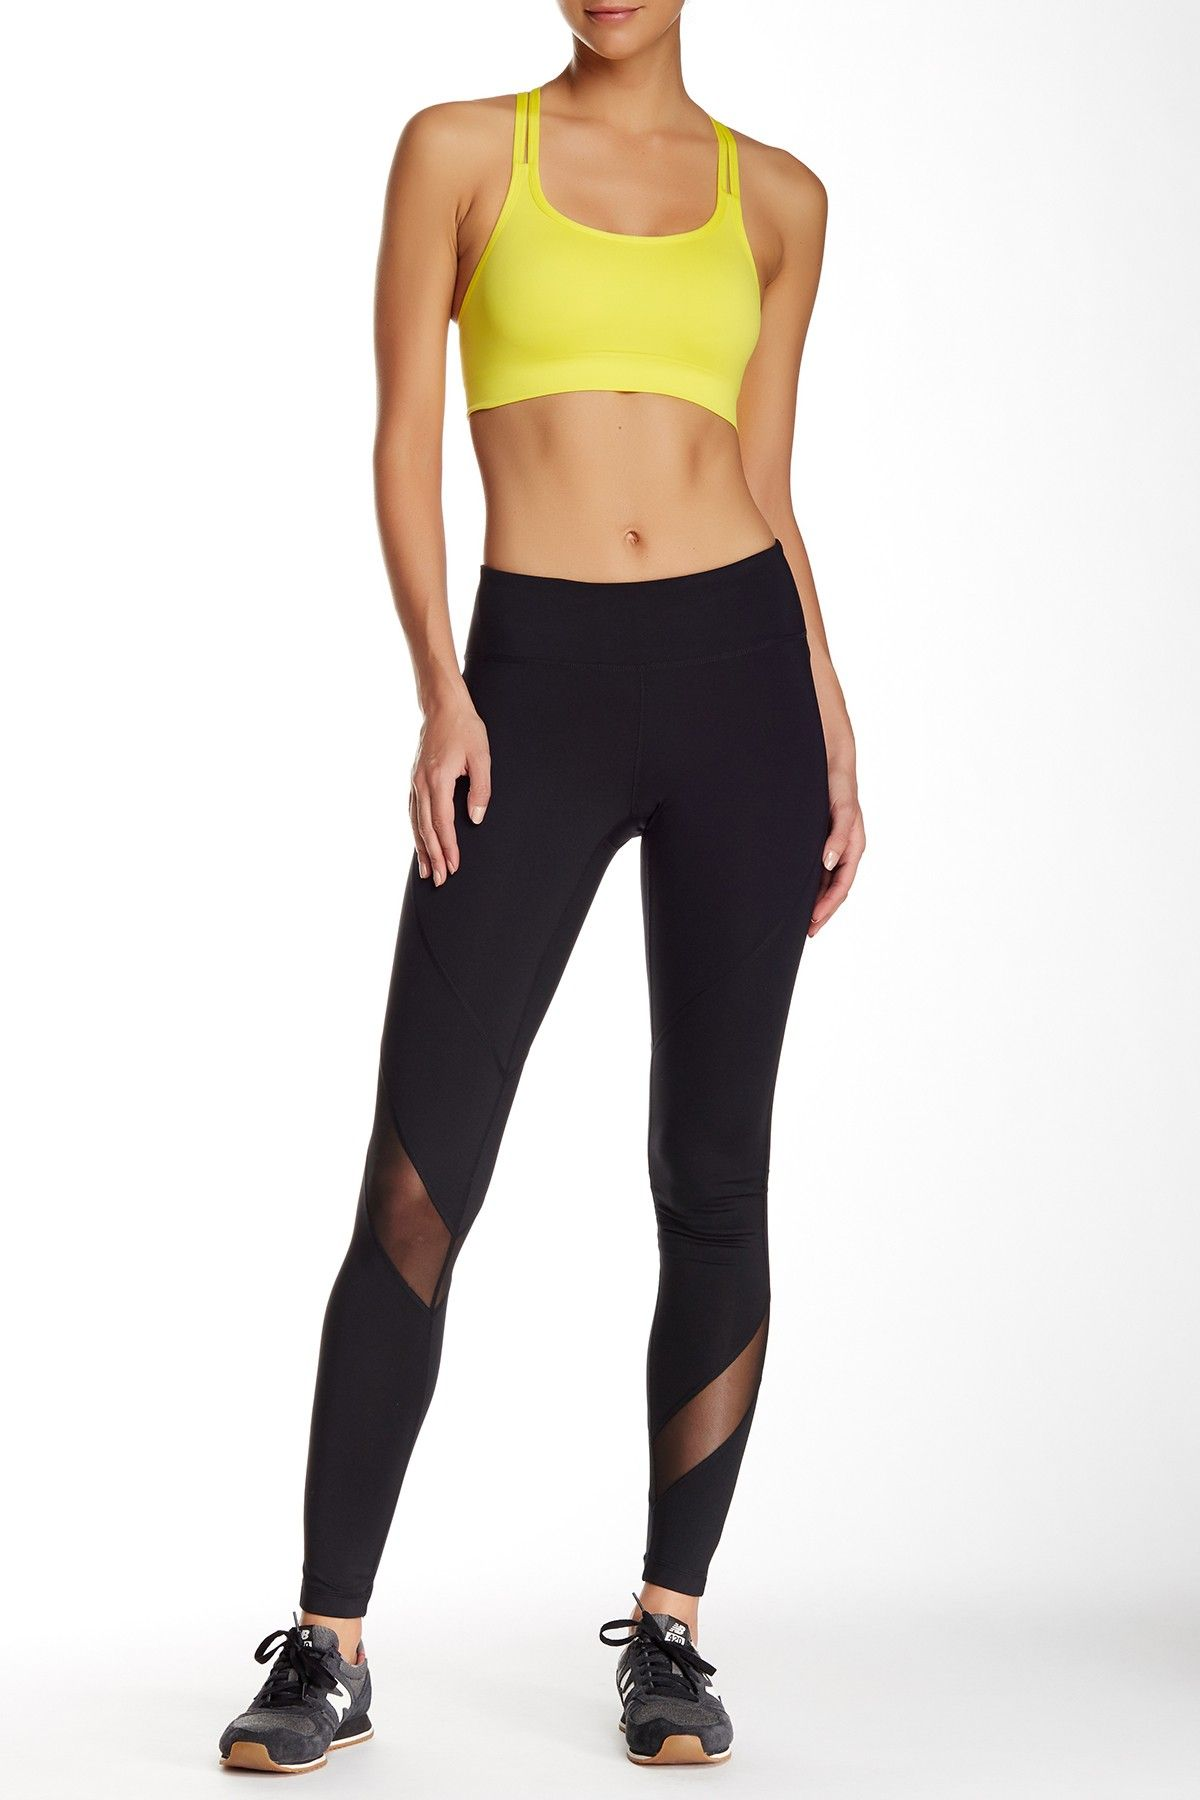 51533a01ece6c Z By Zella - Turn It Up Legging at Nordstrom Rack. Free Shipping on orders  over $100.